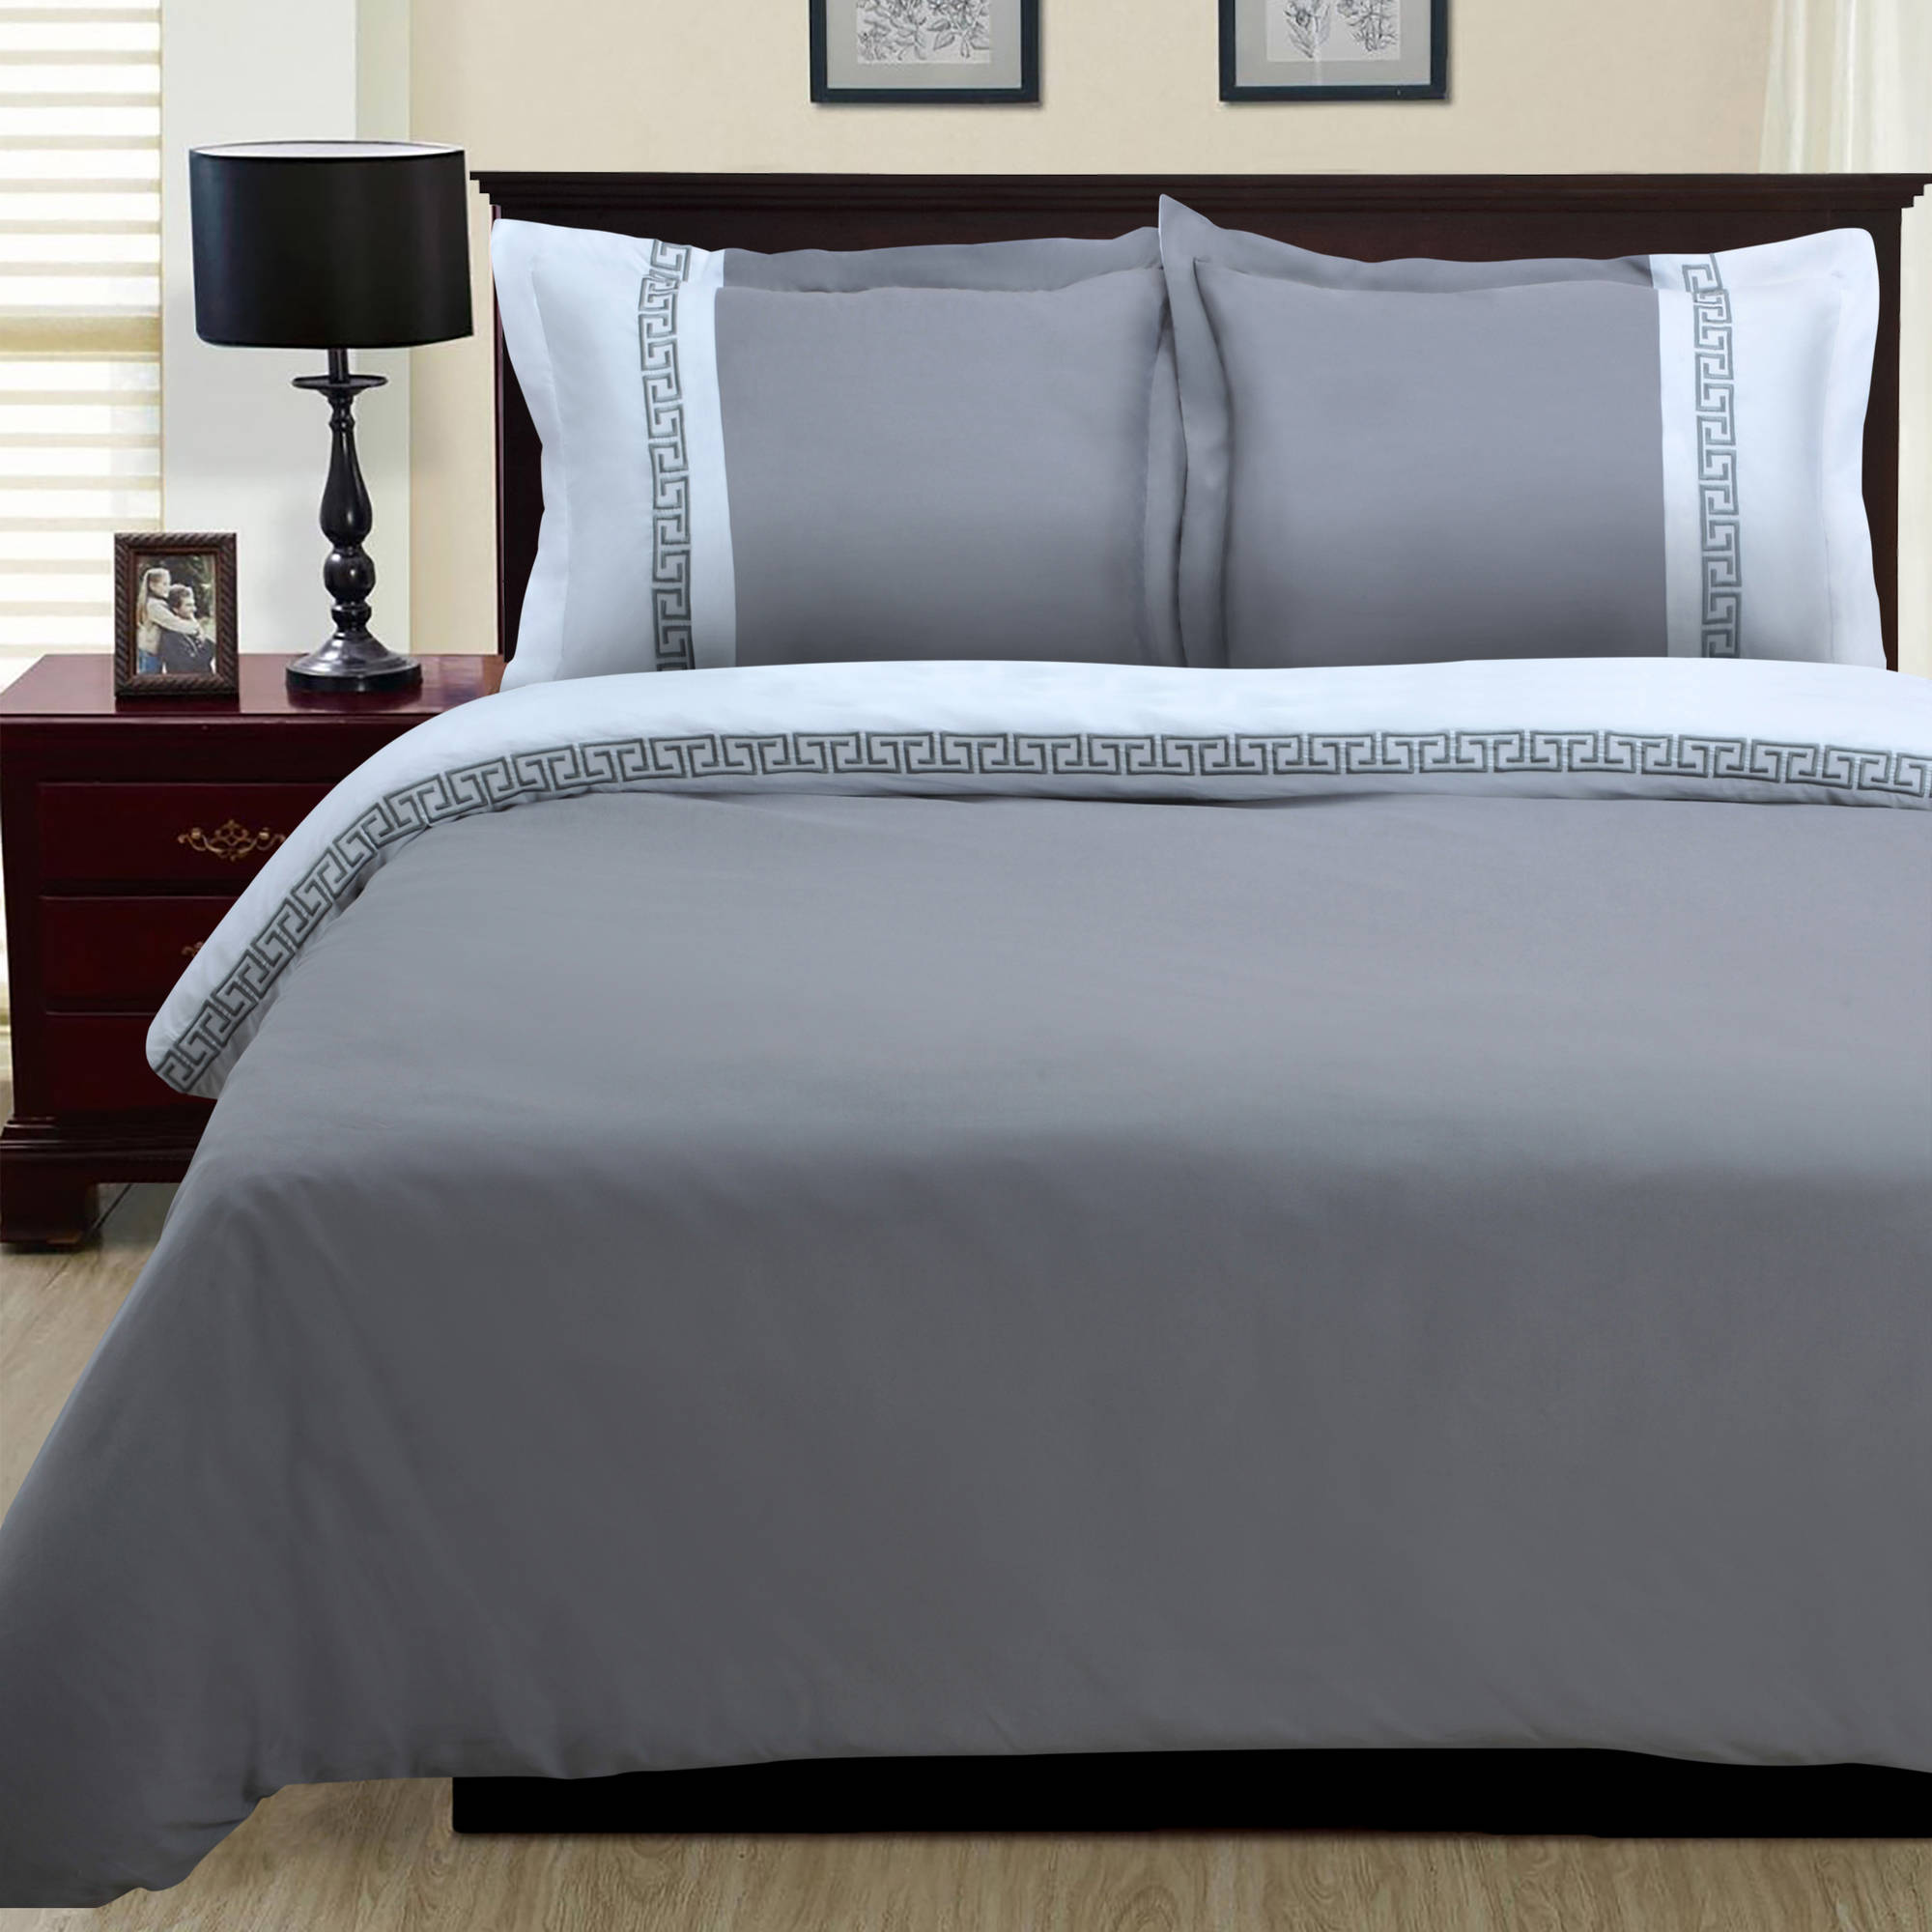 Superior Emma Brushed Microfiber Wrinkle Resistant 3-Piece Duvet Cover Set